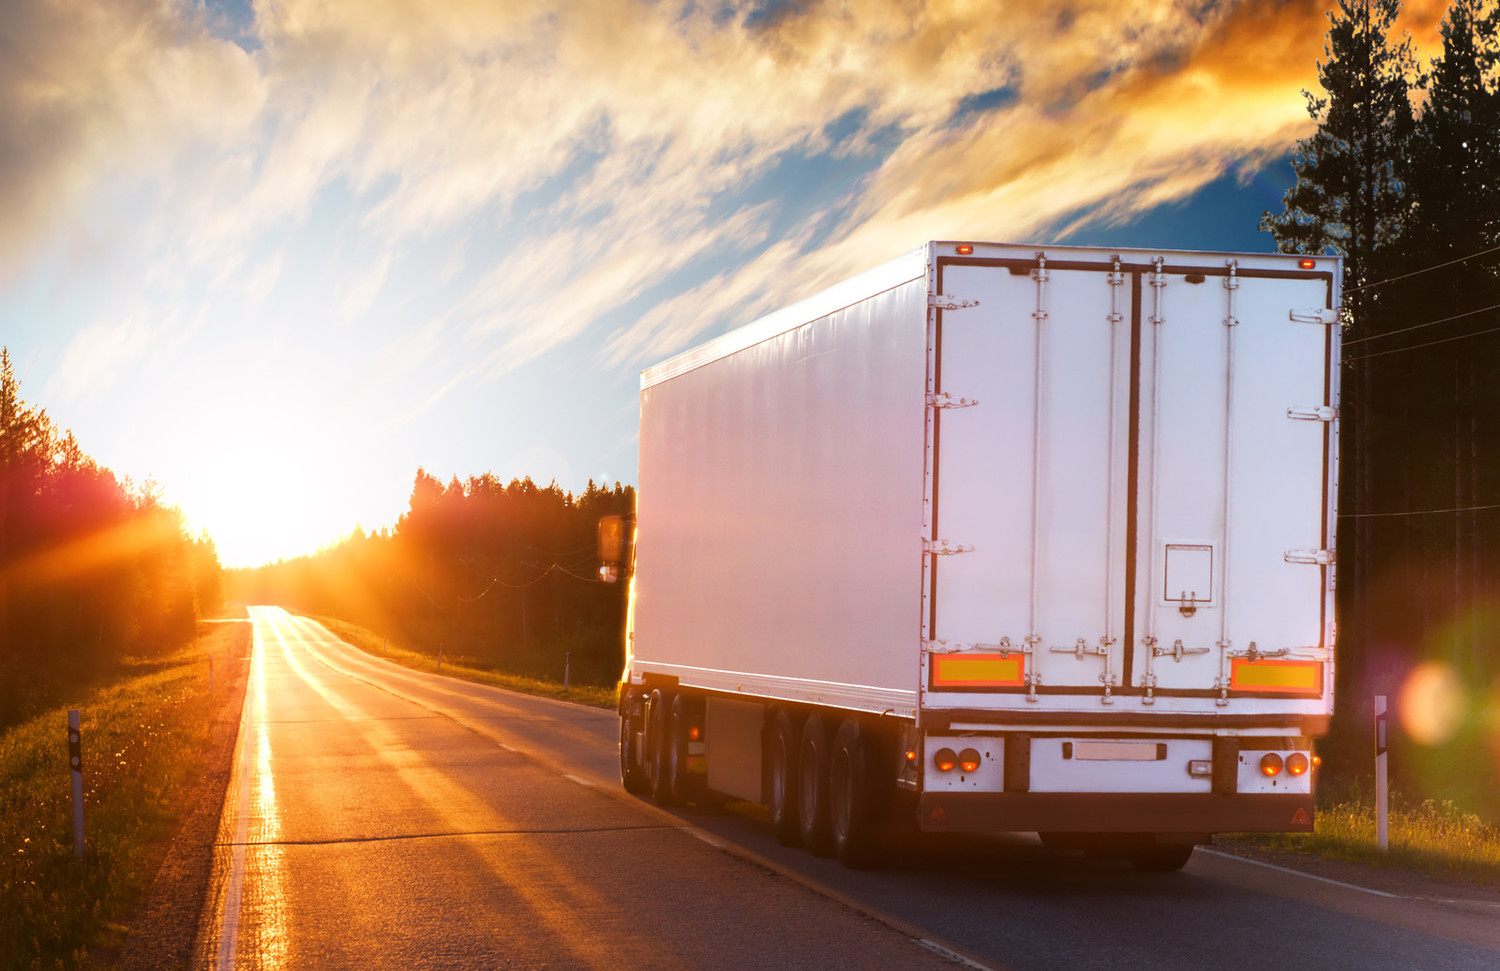 The transportation network business process efficiency lower costs - Truckload Jpg